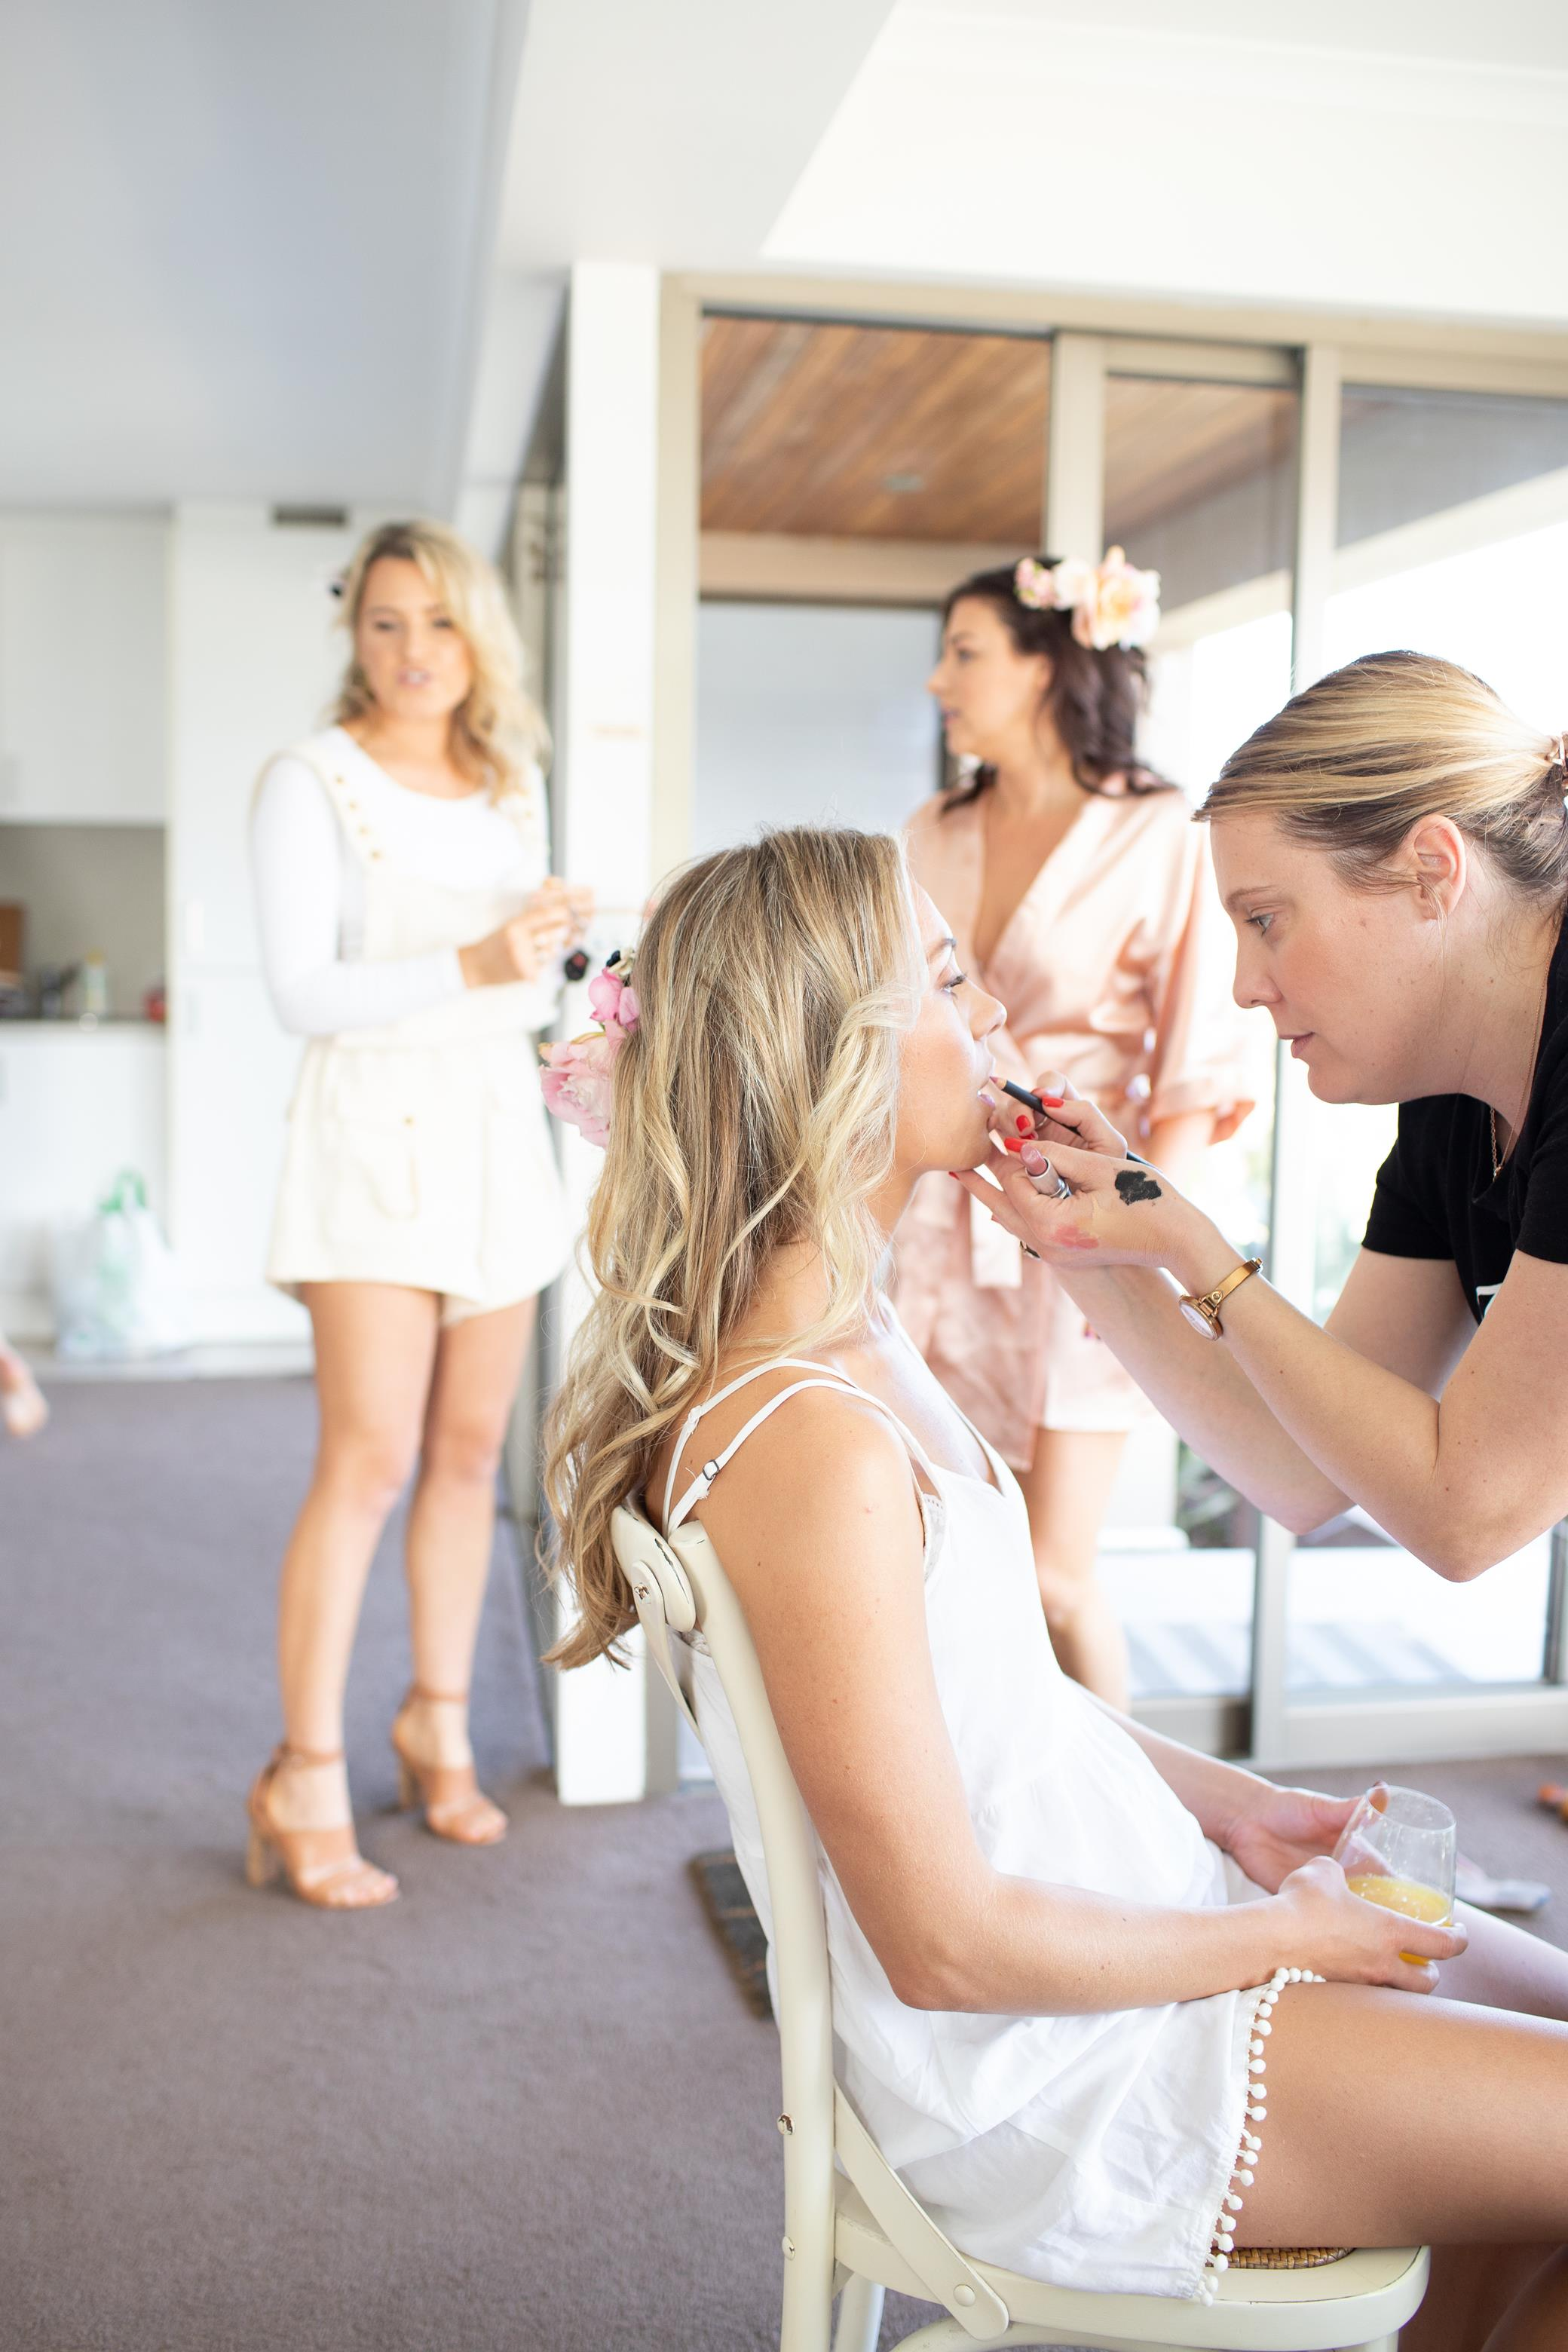 Makeup Artist applying lipstick on bridesmaid